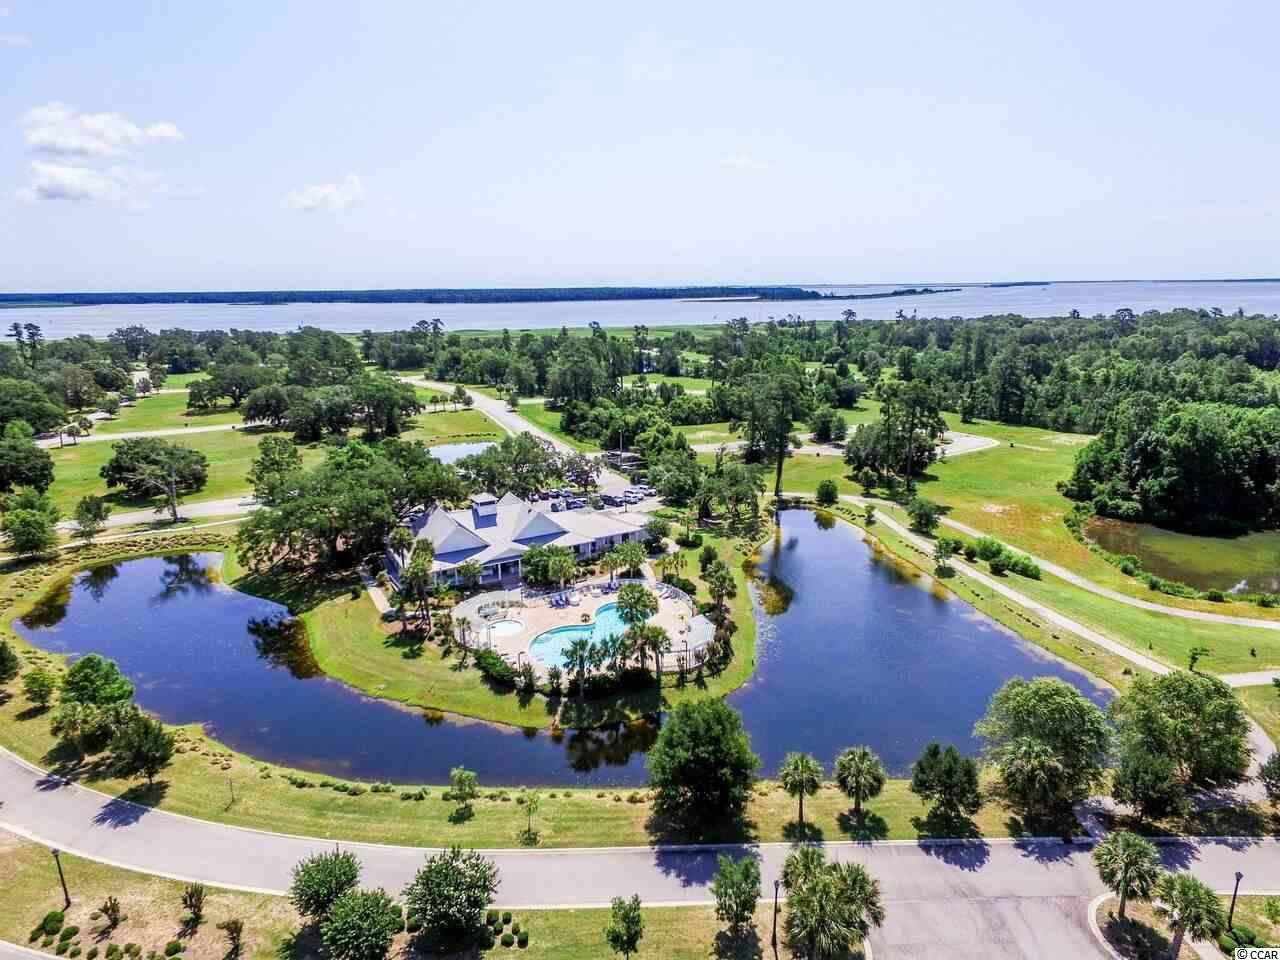 Located in South Island Plantation, a gated community located along Winyah Bay and the Intracoastal Waterway, near Historic Georgetown, SC. Community amenities include a pool, kiddie pool and hot tub. There is also a 5000 sq ft club house with an equipped fitness center, a bar and a full kitchen. Walking trails wind throughout the community with gazebos for periodic resting. A fishing/crabbin' gazebo is now complete. A secured RV/ Boat storage area is available for property owners. Beautiful ponds for fishing and huge Oak Trees make this one of the premier communities in the Georgetown area. Natural gas is also available in South Island Plantation. Build your dream home today.